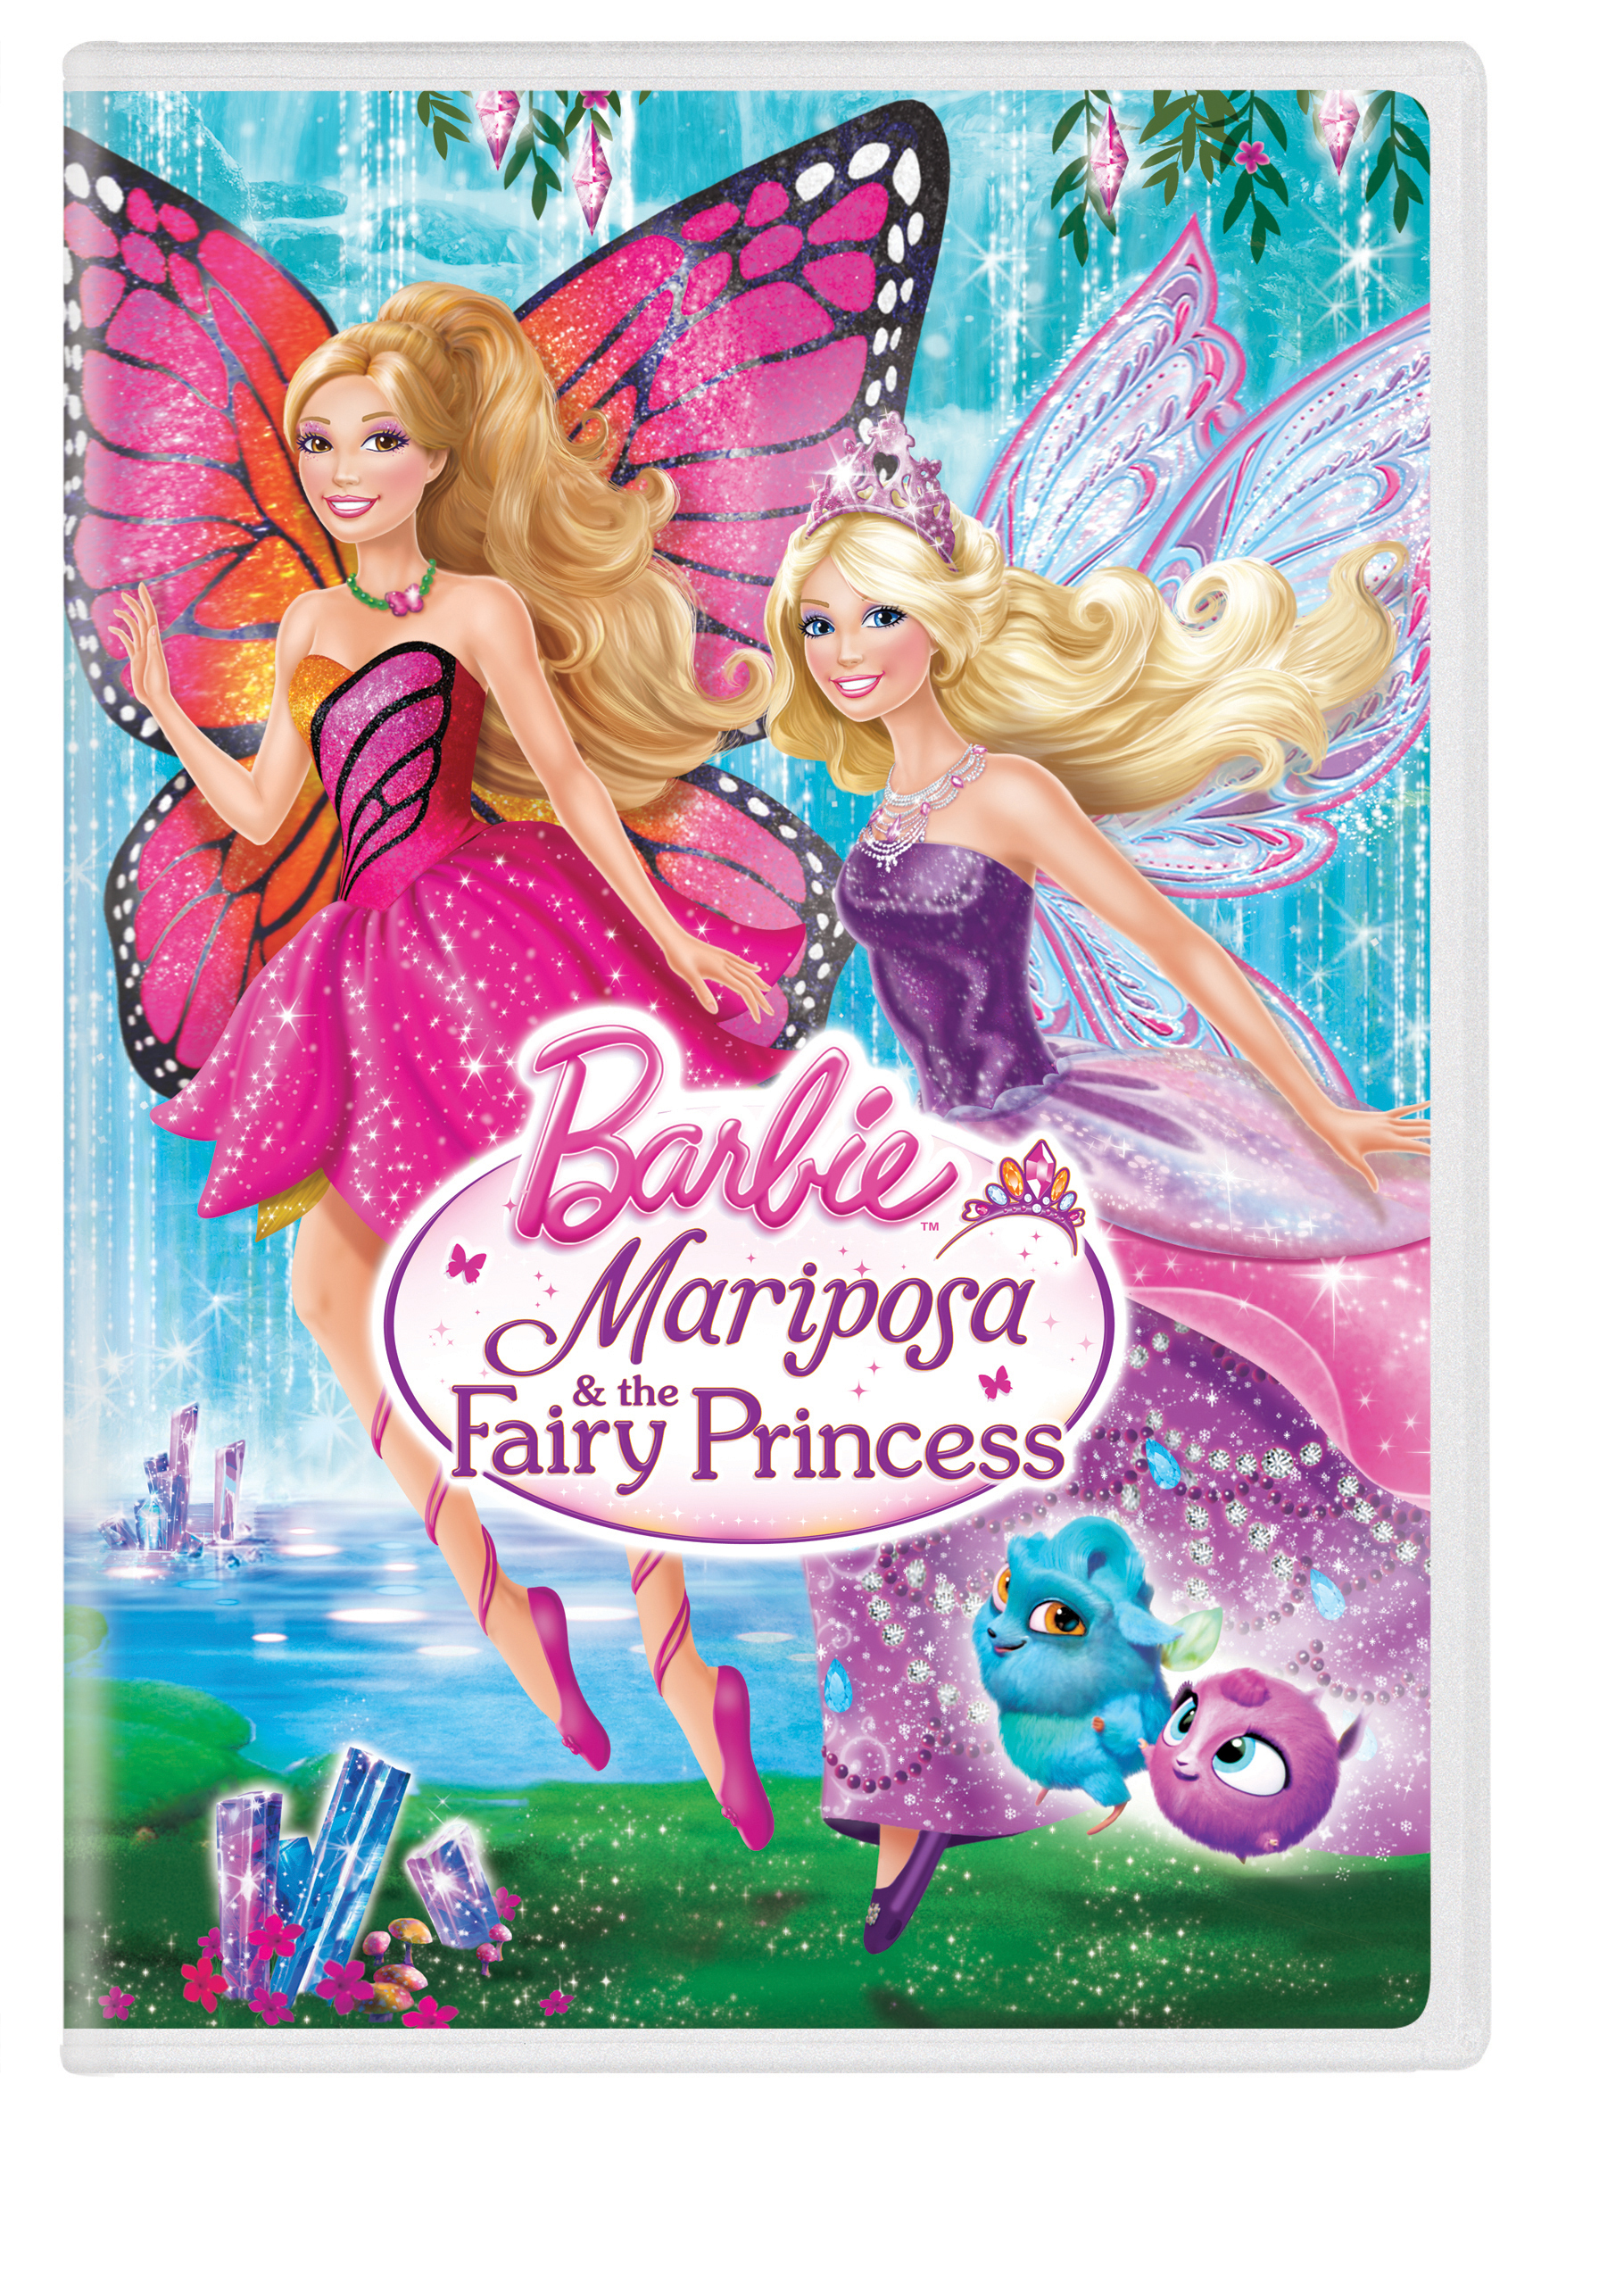 This fall, Barbie(R) flutters back into our hearts as Mariposa(TM), in the new movie Barbie(TM) Mariposa & the Fairy Princess, available now. As the 26th direct-to-DVD and Blu-ray(TM) combo pack release for the iconic doll, Barbie(R) is sure to enchant girls with this all-new tale of adventure and friendship. Mariposa(TM) is the royal ambassador sent to bring peace between her land, Flutterfield and its rival, the Crystal Fairies of Shimmervale. Despite a rocky start, Mariposa(TM) becomes fast friends with the princess Catania(TM).The adventure begins when Mariposa encounters an evil fairy plotting to destroy Shimmervale. Mariposa rushes to her friend's side to help save the fairy land and together they prove the best way to make a friend is to be a friend. Girls can create their own magical moments with a line of themed dolls and toys currently available at retailers nationwide. (Graphic: Business Wire)